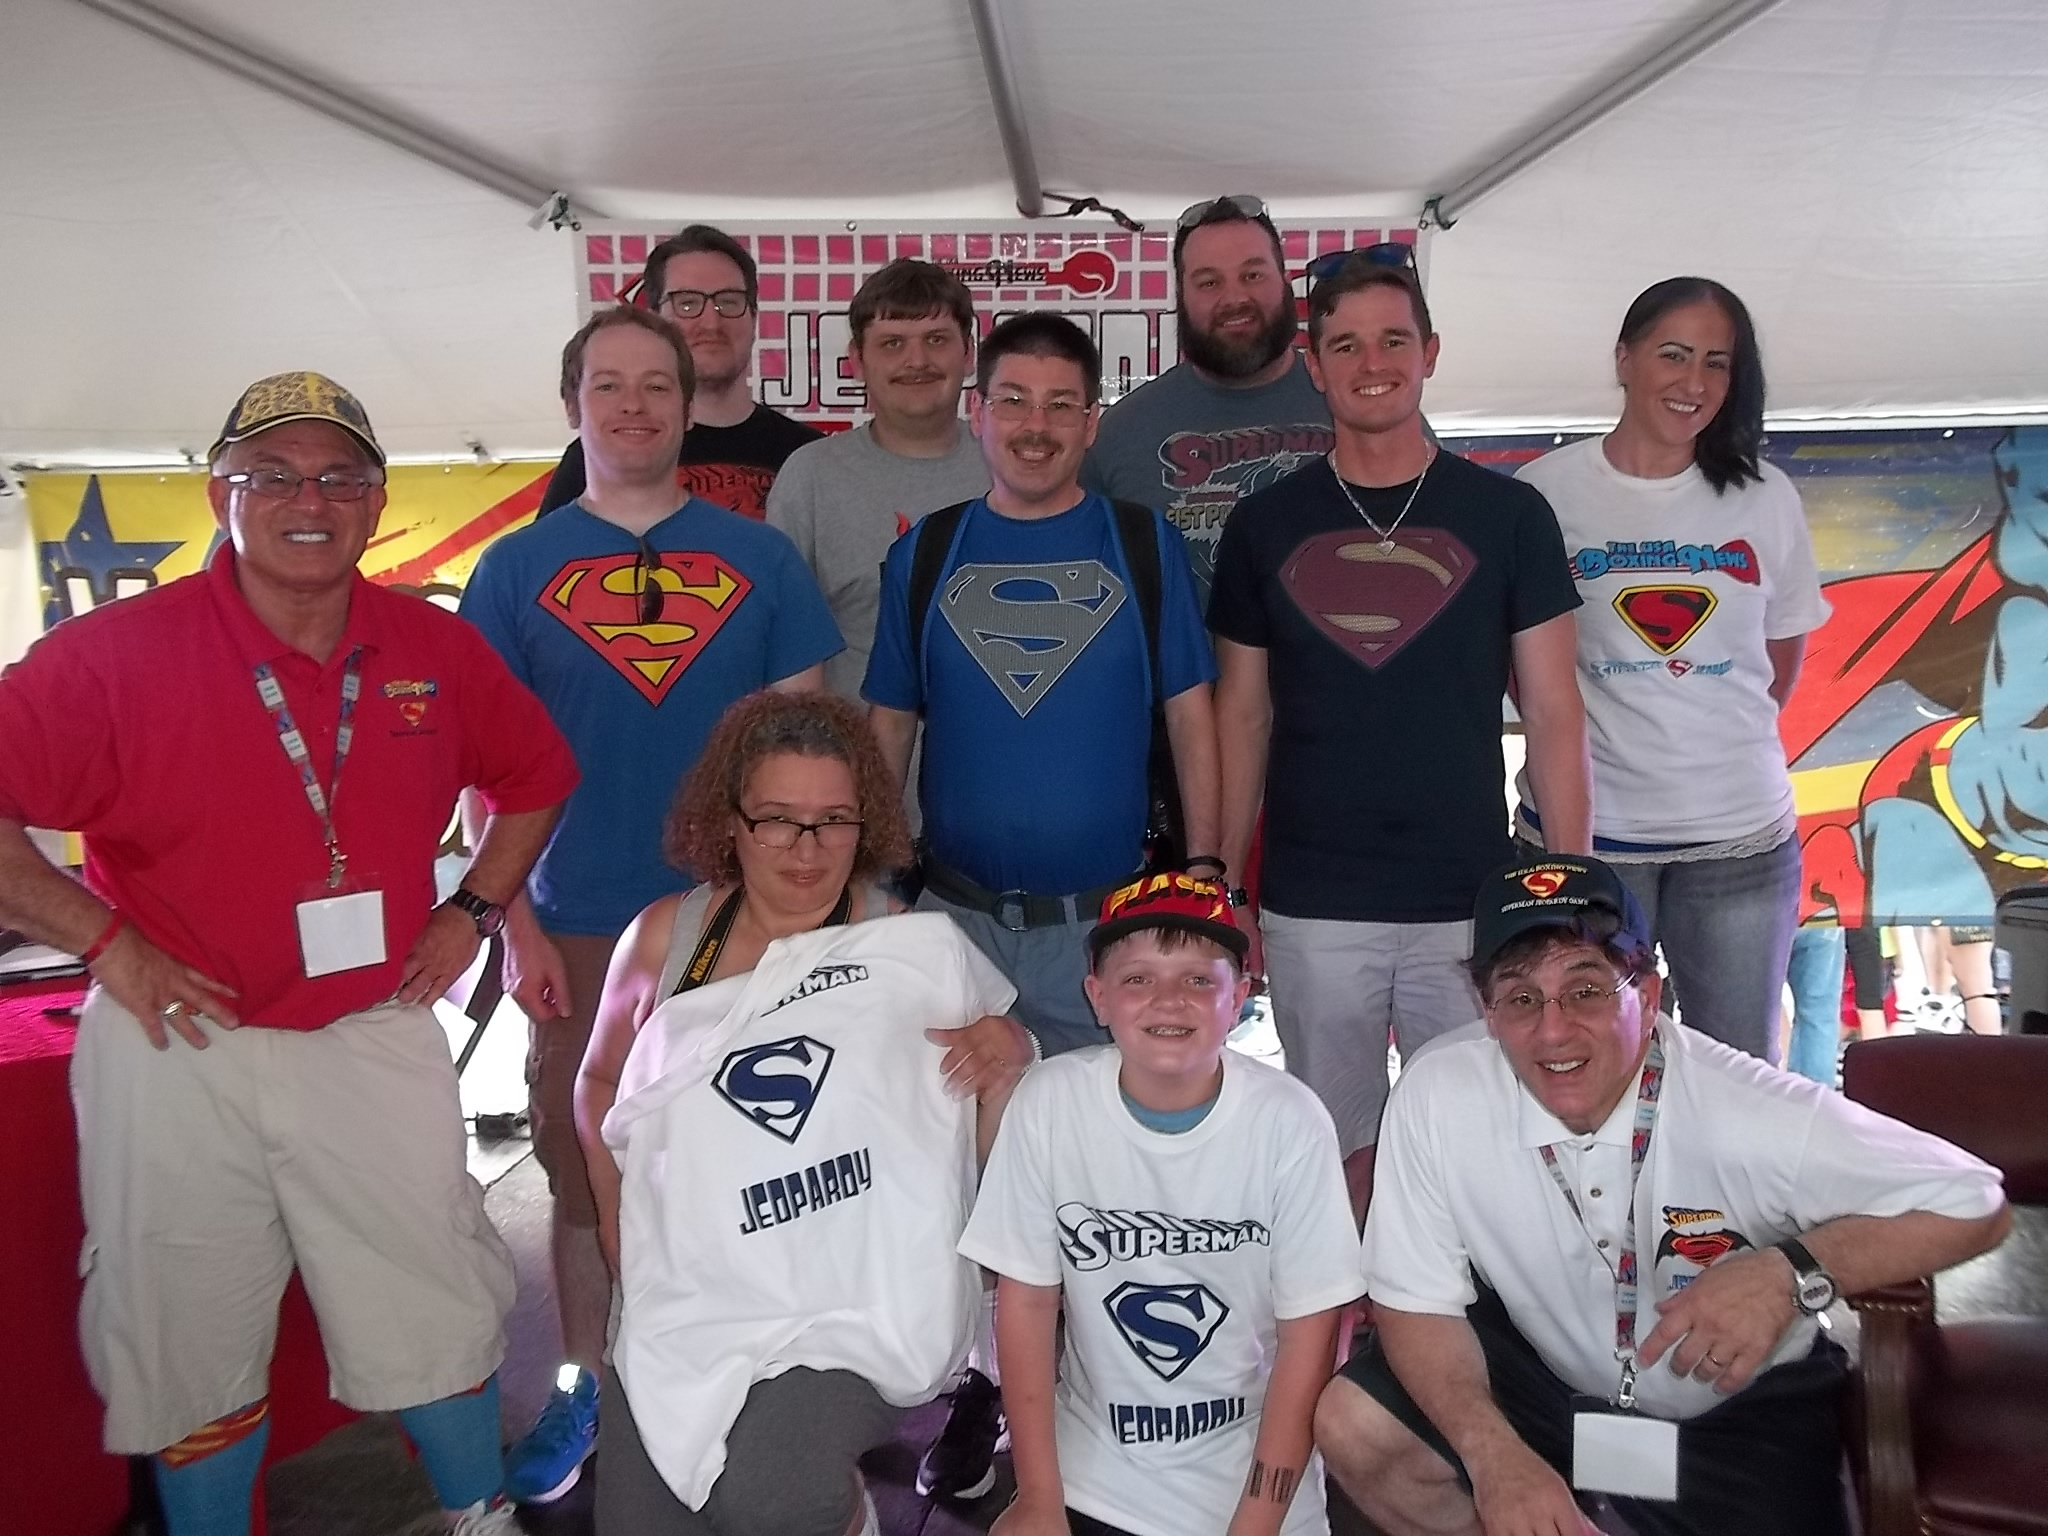 The group photo of 2016 The USA Boxing News Superman jeopardy Game